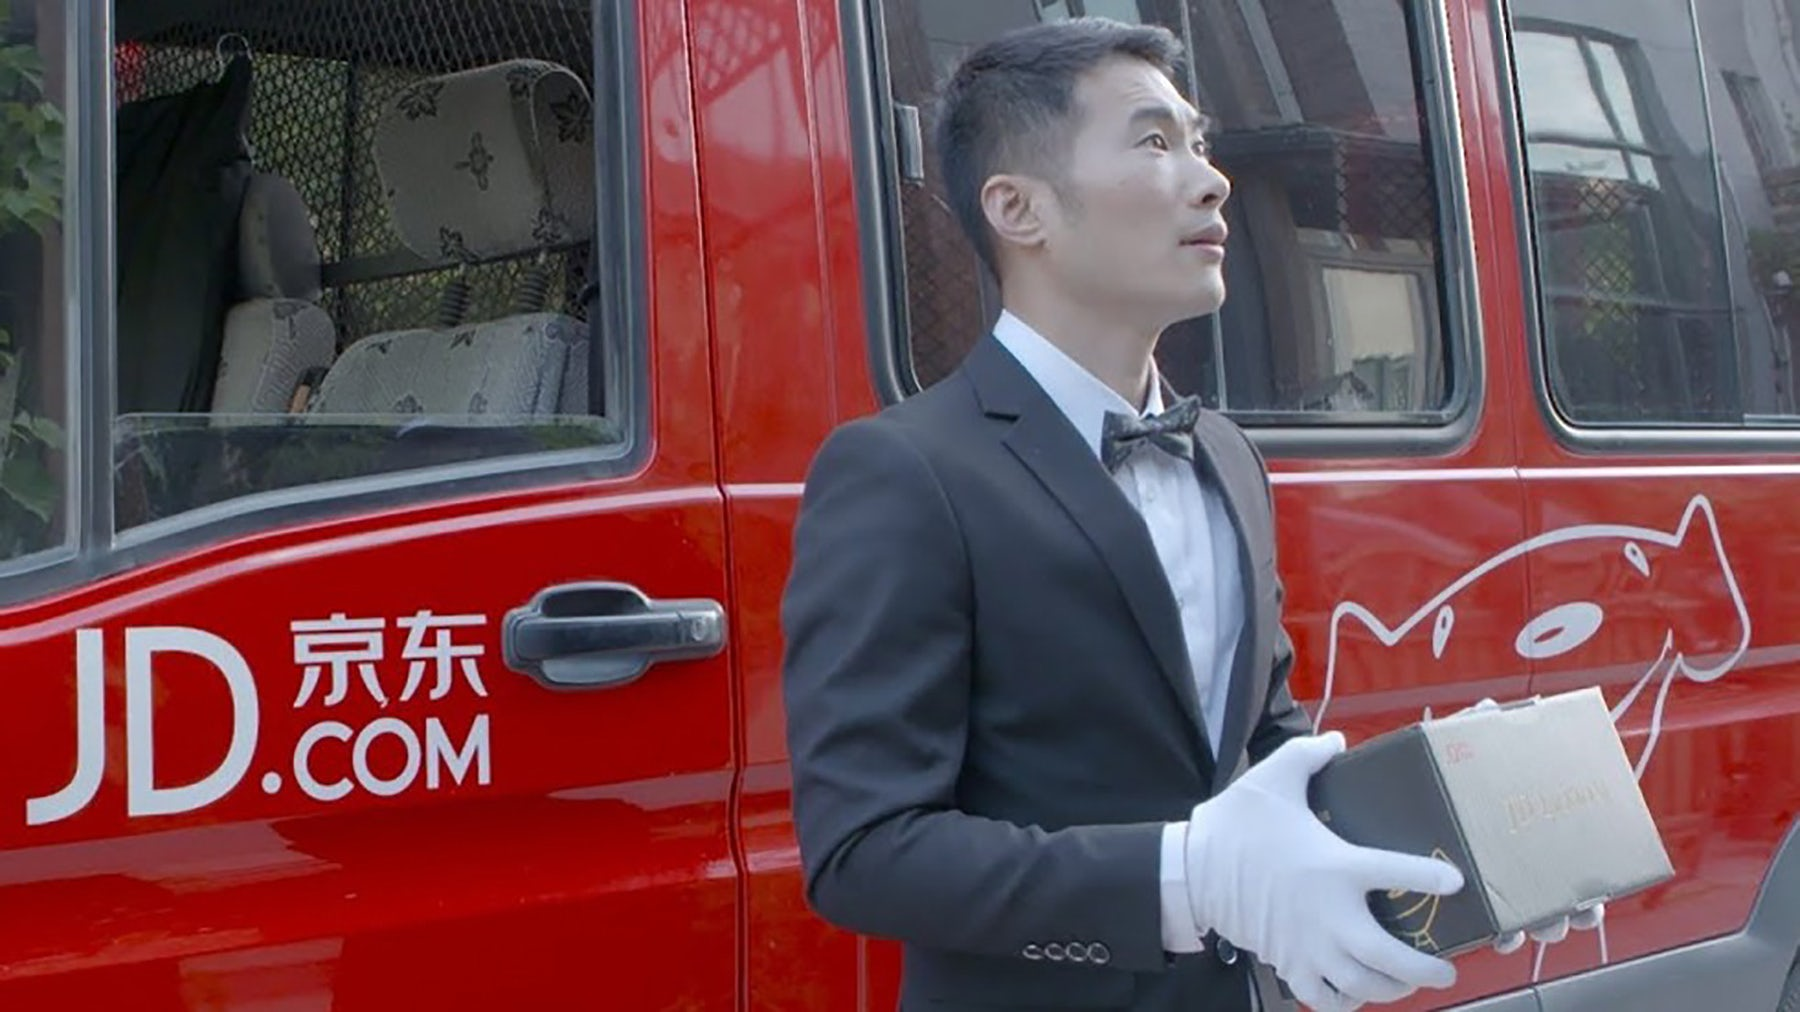 JD.com's white glove delivery service | Source: Courtsey